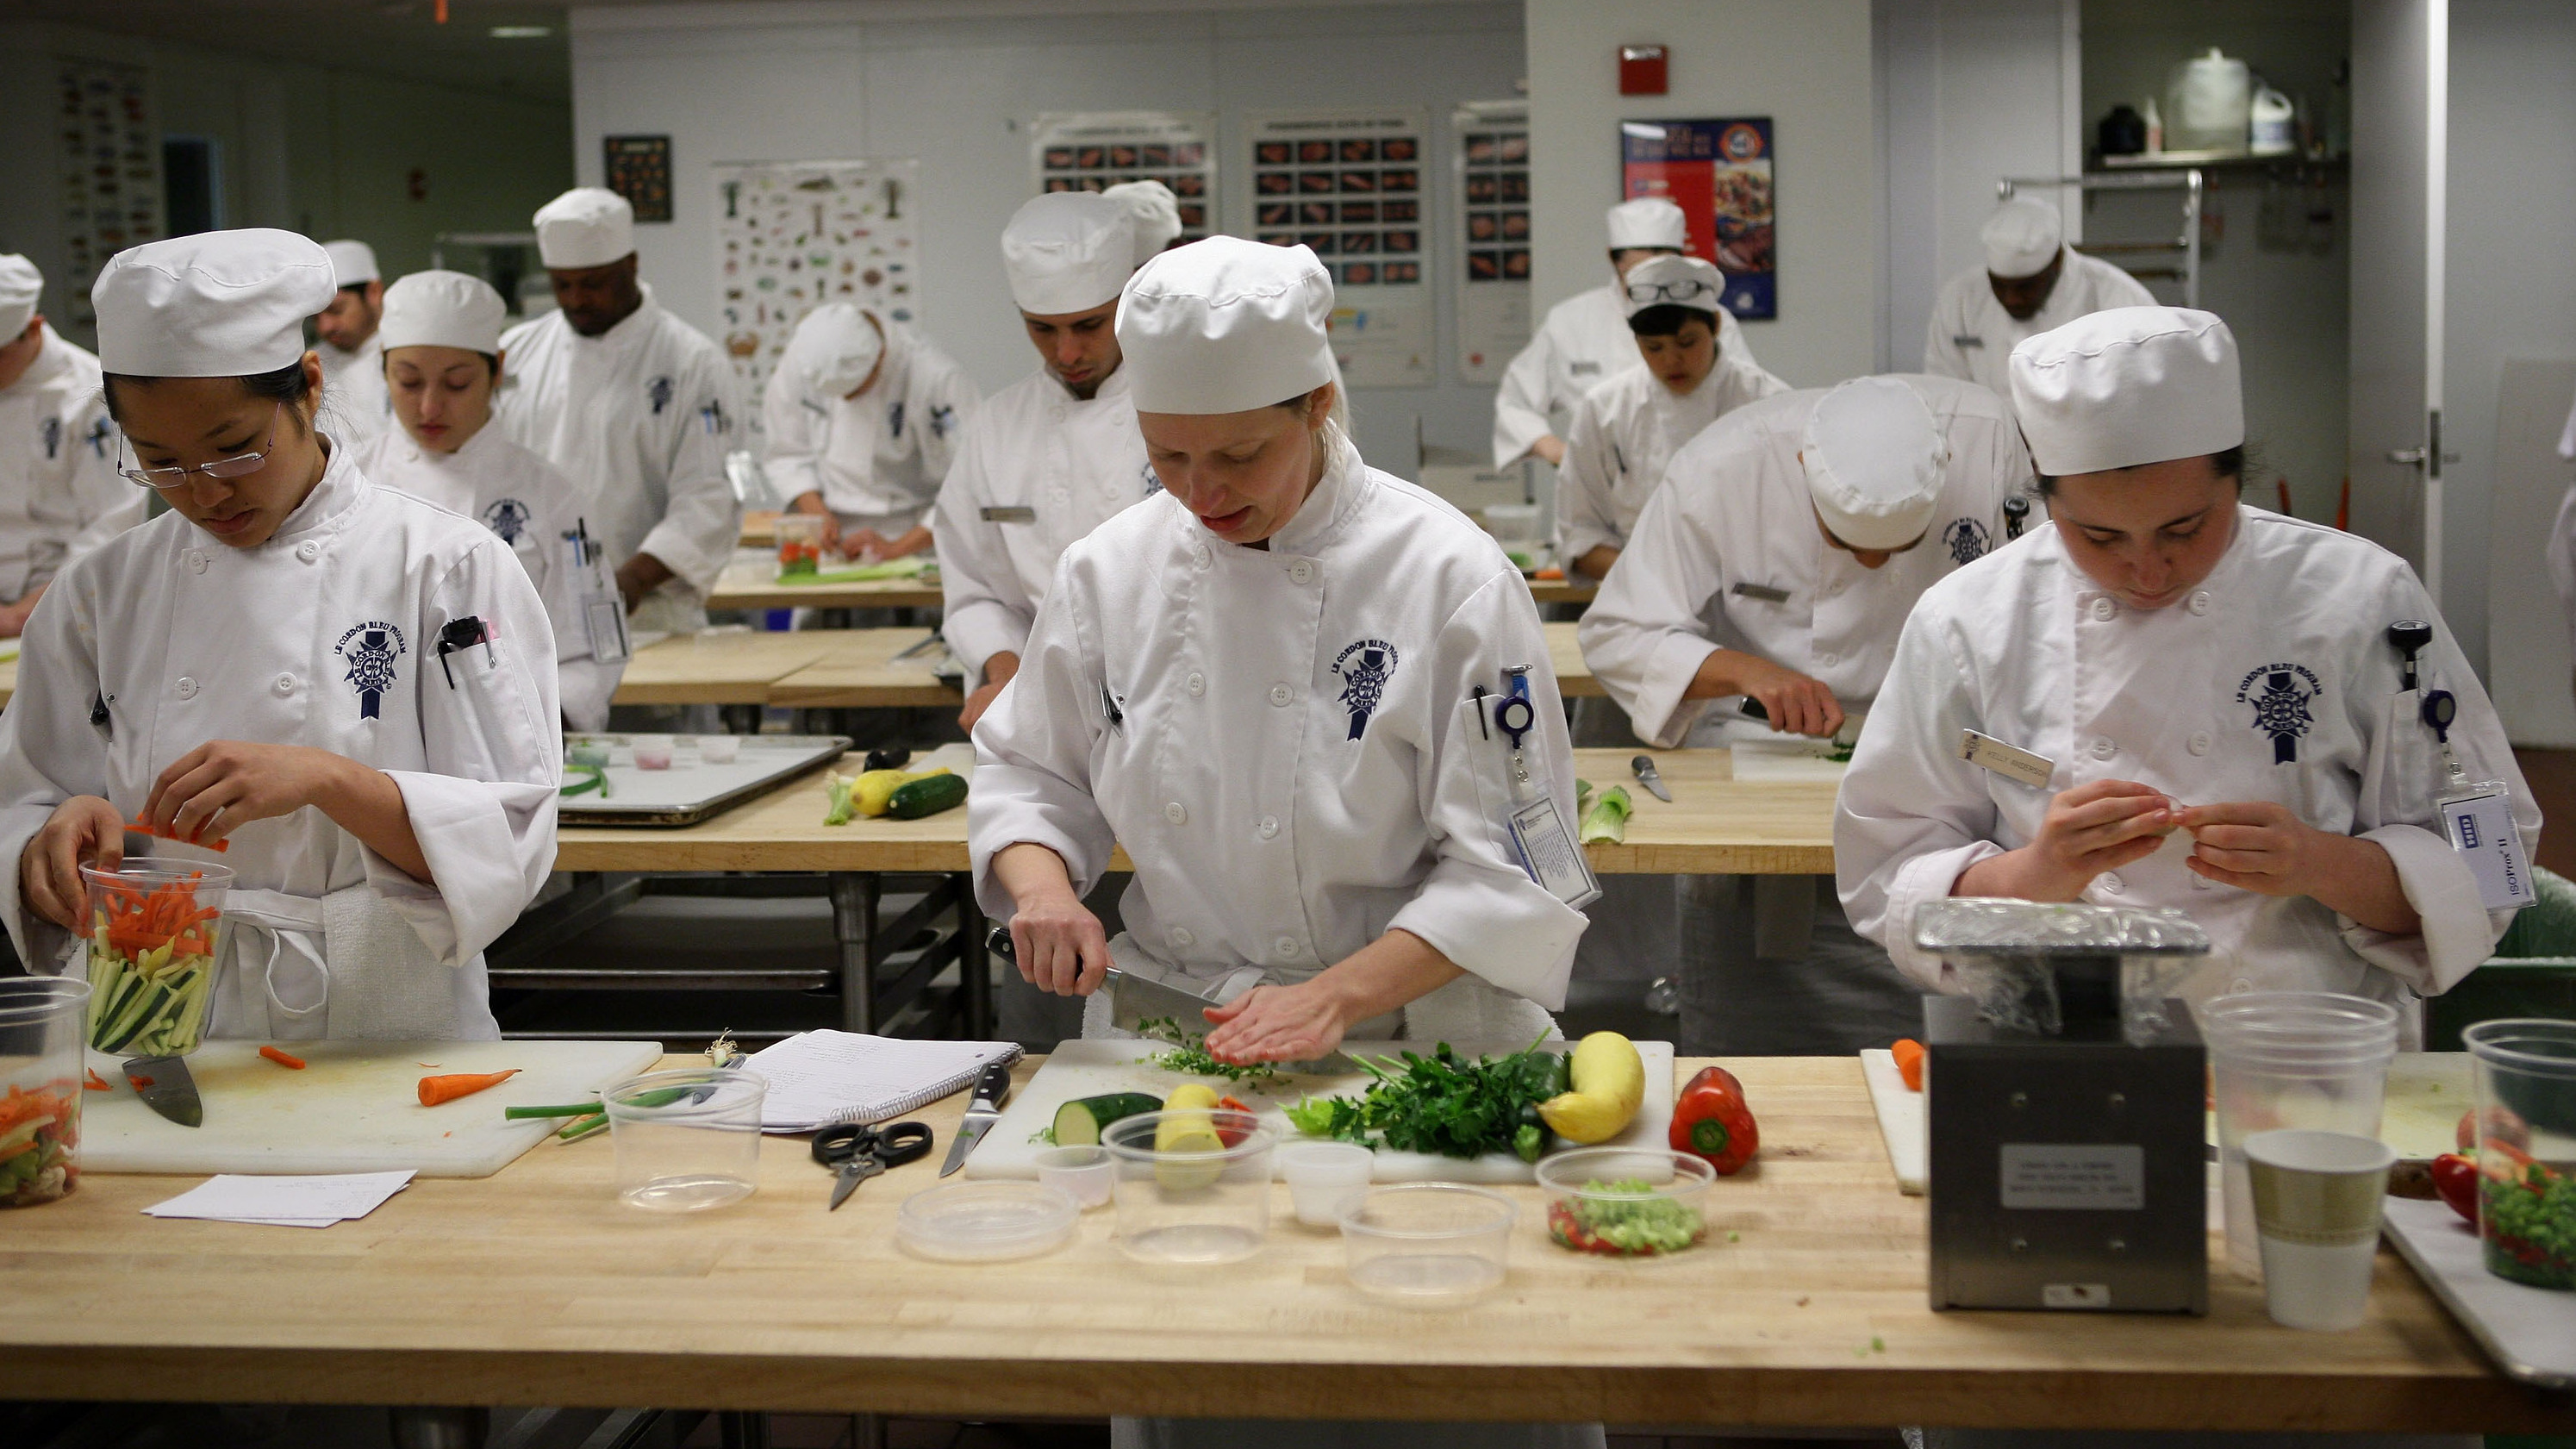 Cuisine Us As U S Bids Adieu To Le Cordon Bleu Not All Chefs Say It S Cream